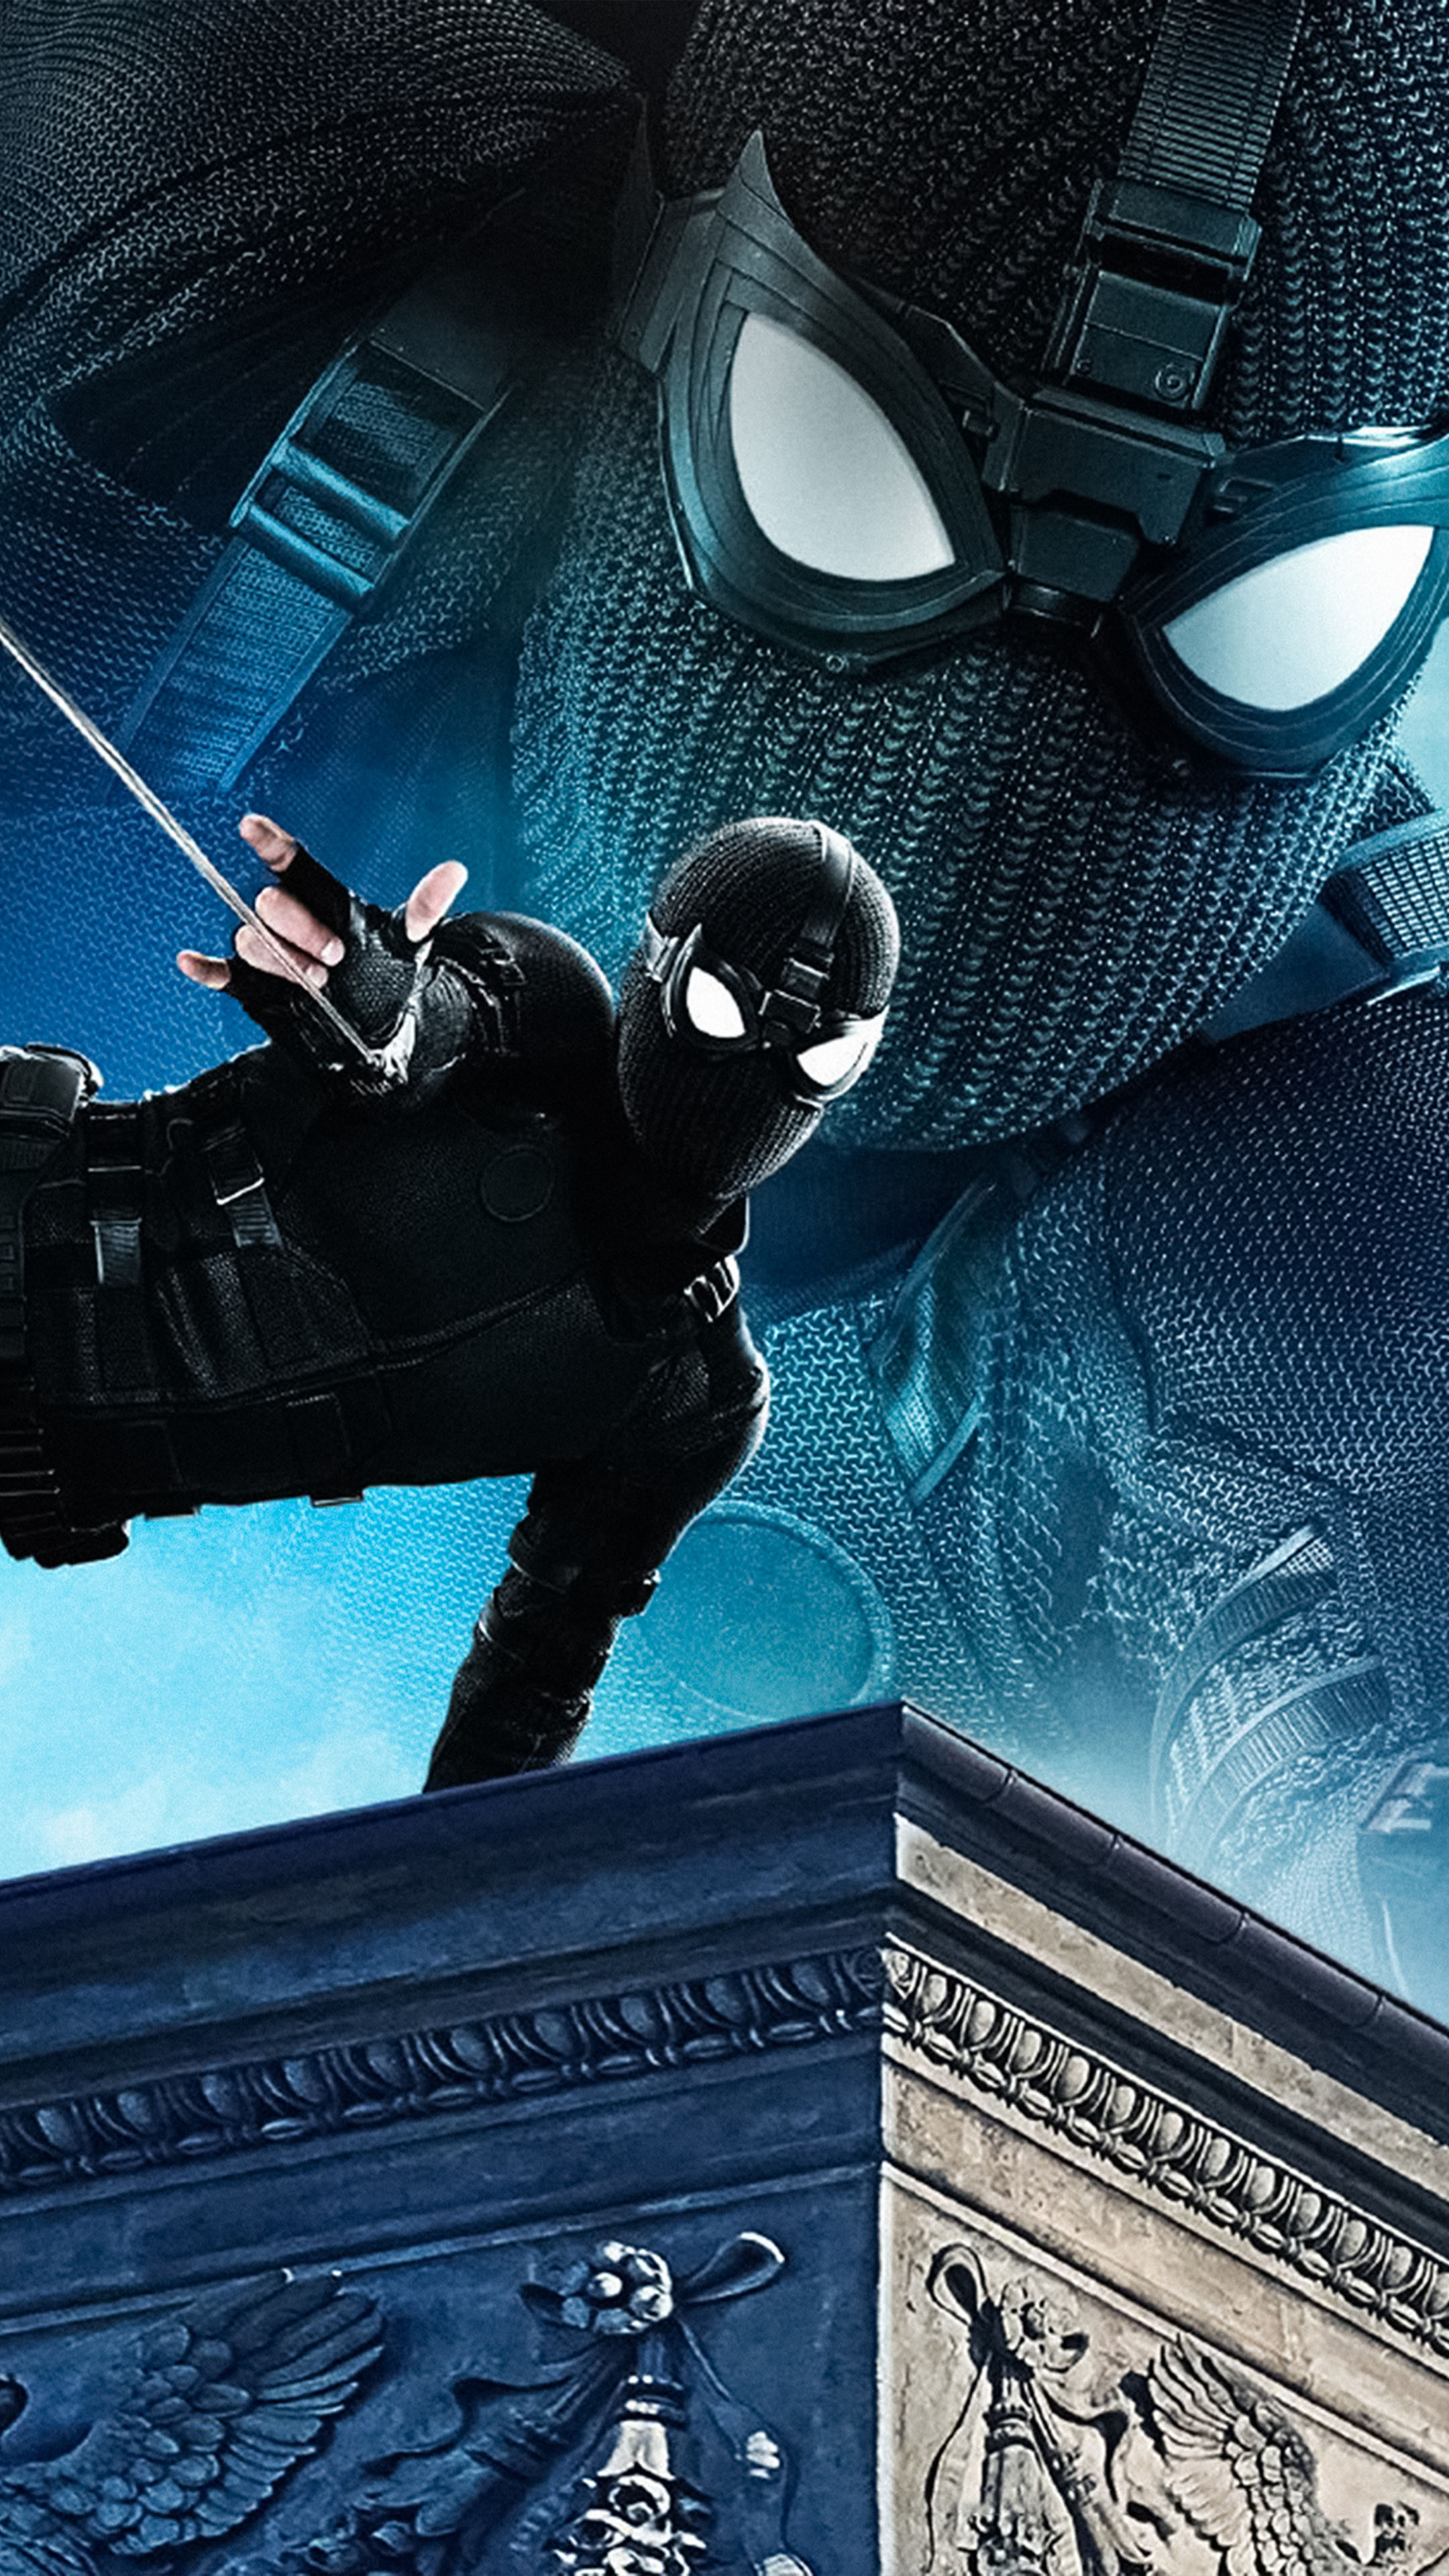 Black Suit Spider Man Far From Home 2019 4k Ultra Hd Mobile Wallpaper